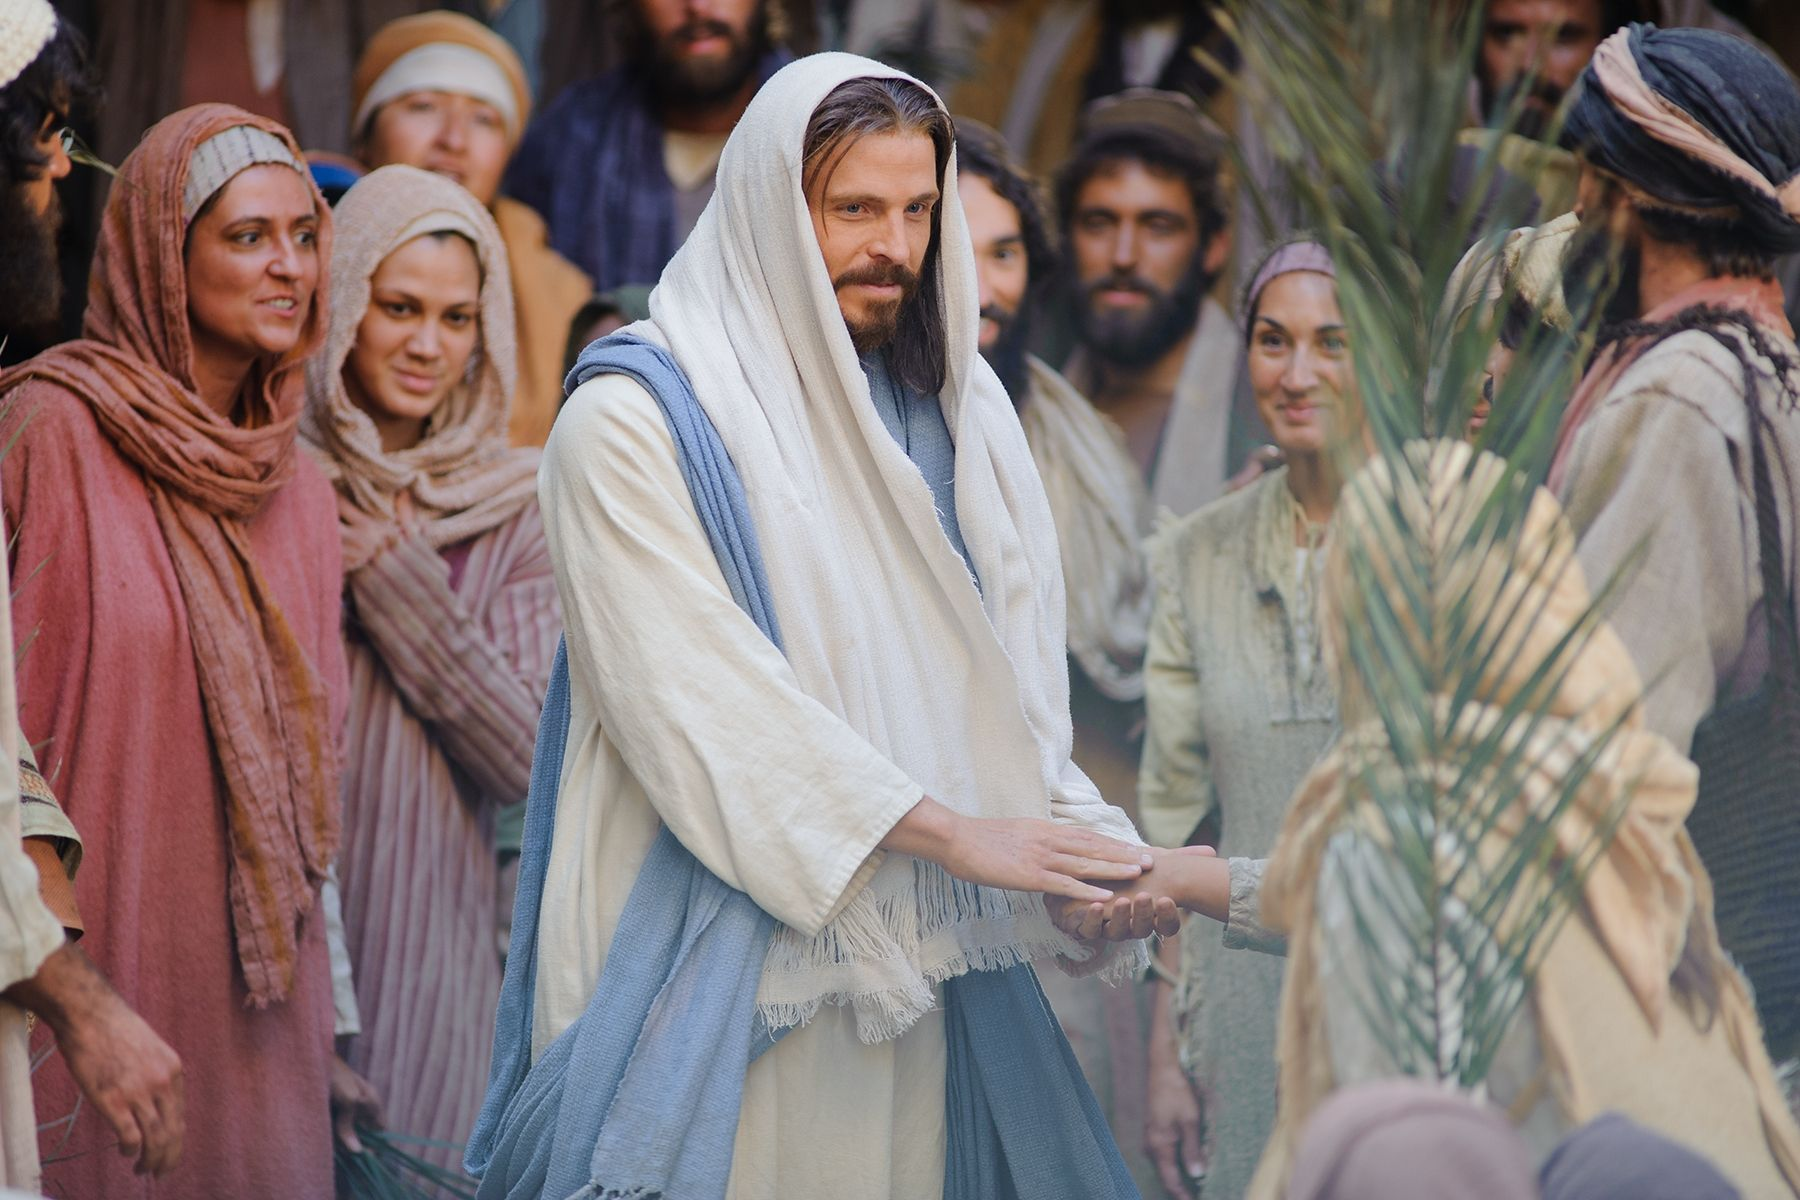 Followers of Christ wave palm leaves as Jesus enters Jerusalem.